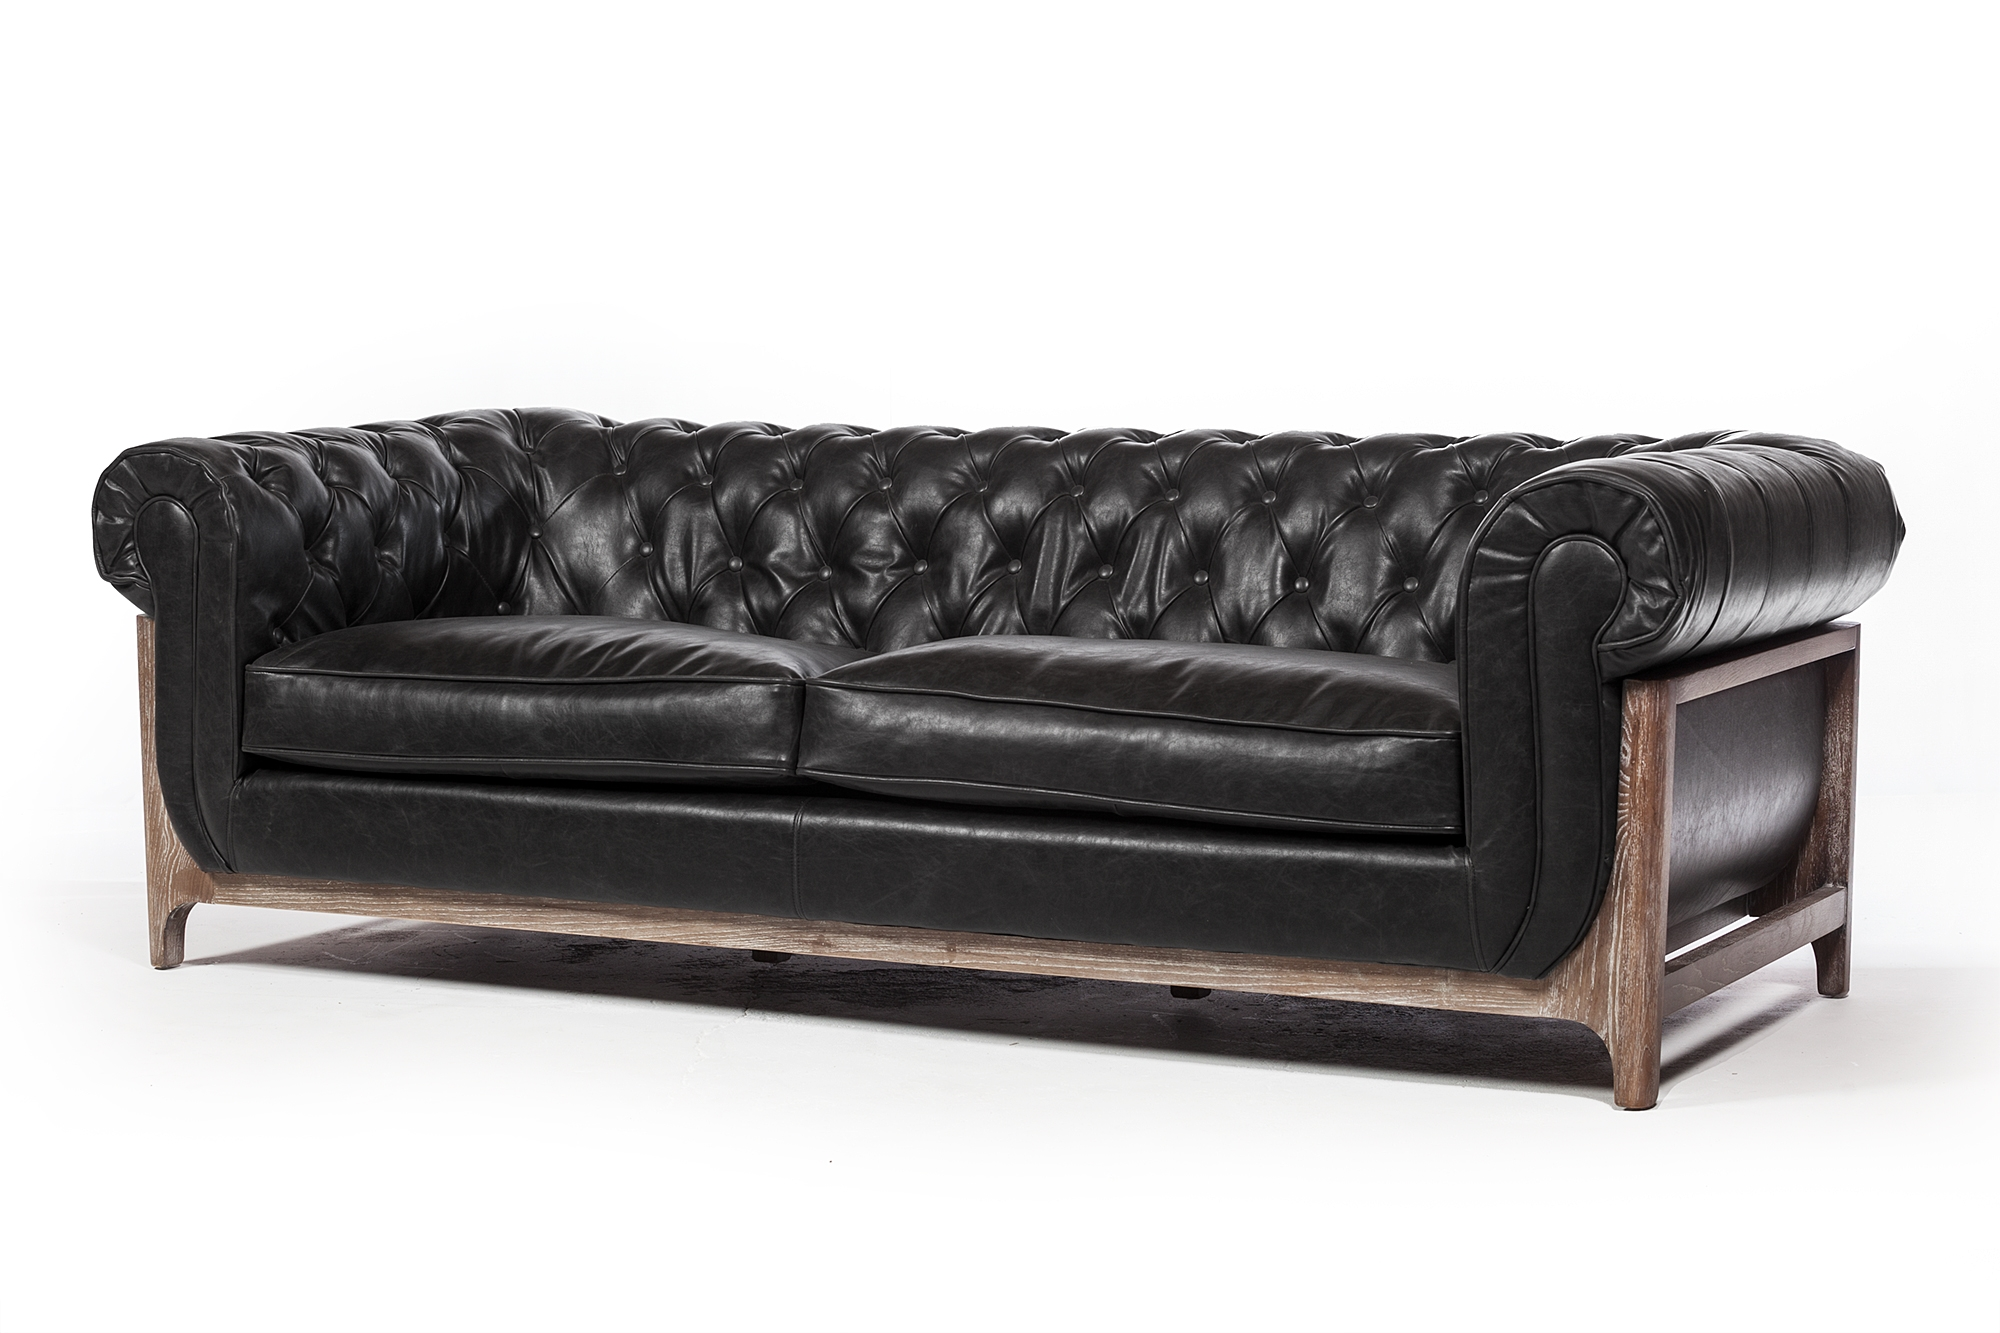 Katrina 3 Seater Black Leather Sofa